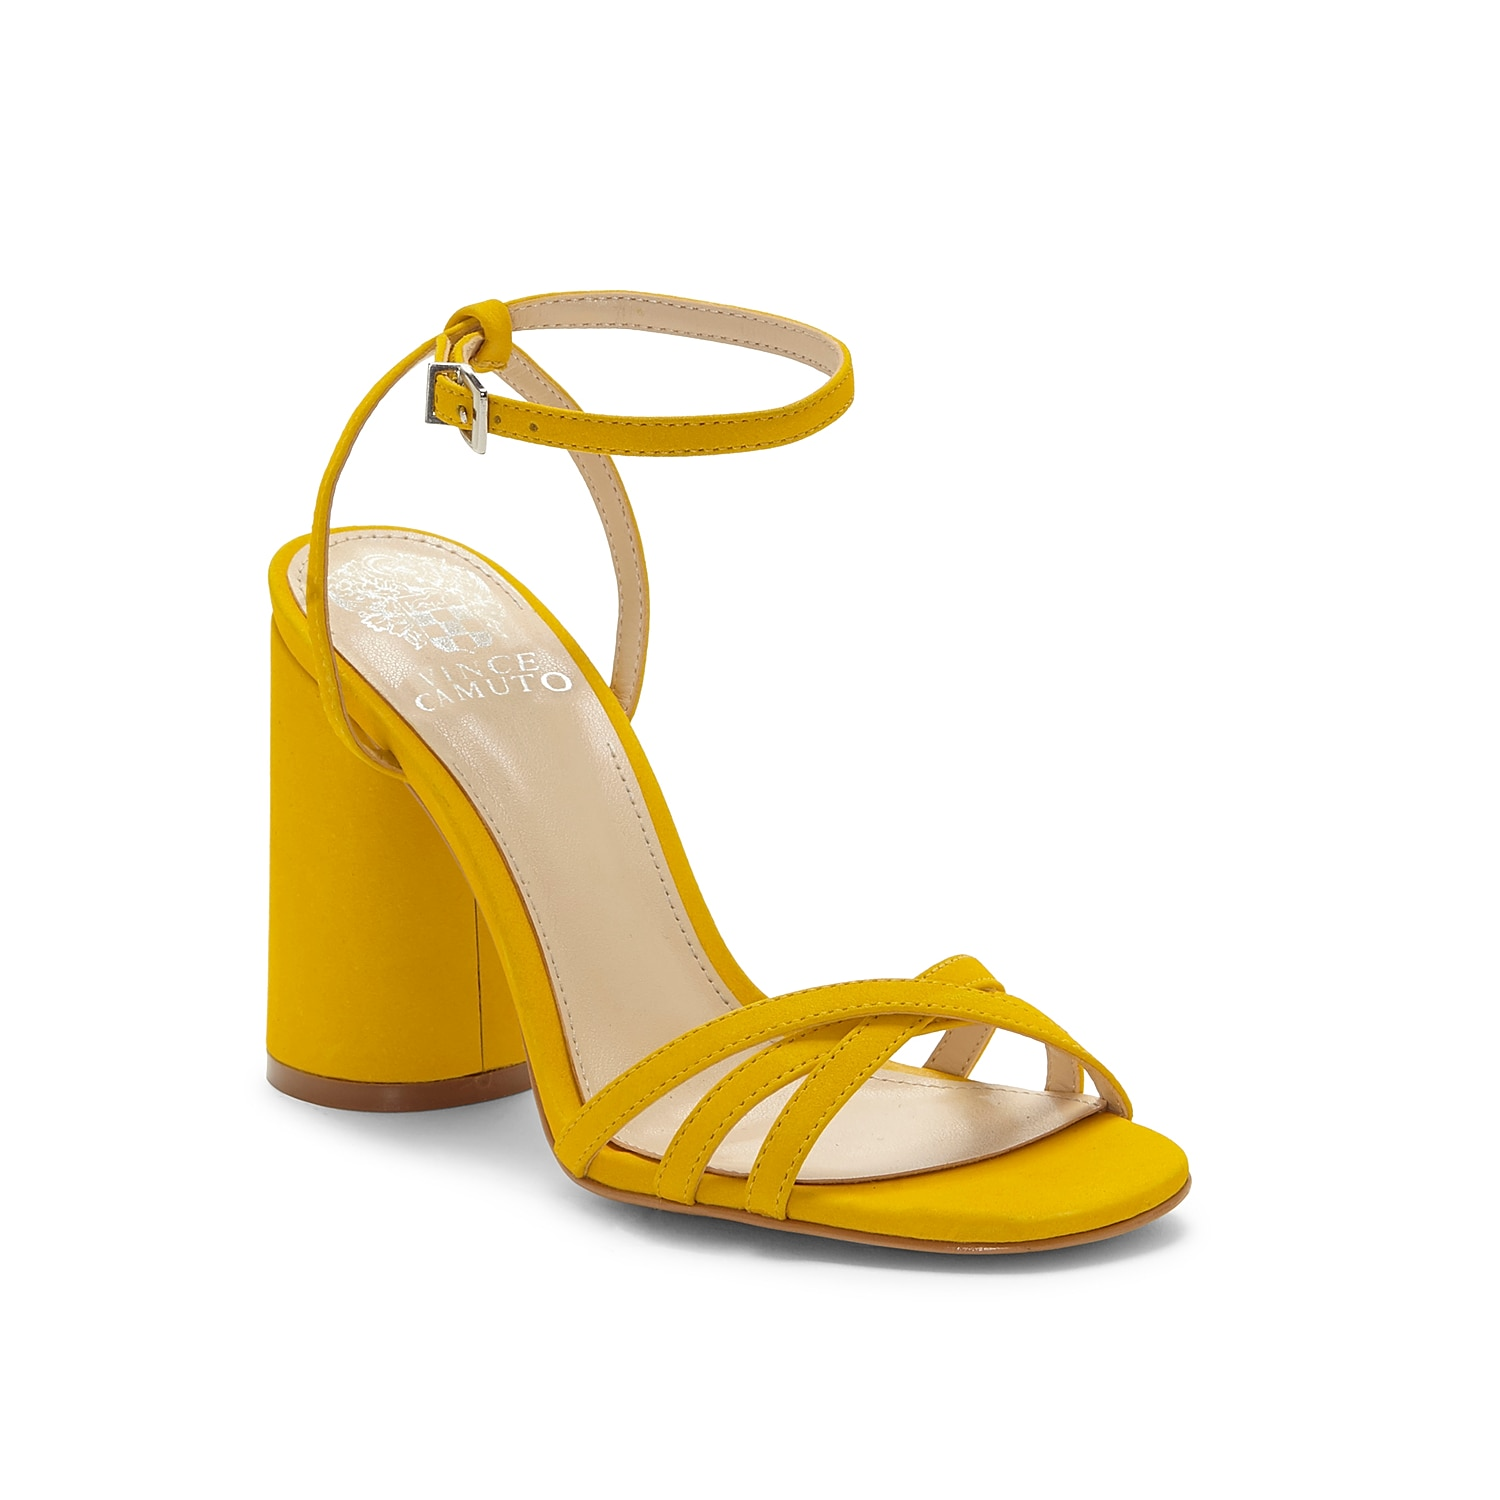 Look fabulous from every angle in the Vince Camuto Kantiel sandal. Designed in a two-piece strappy profile, this ankle strap sandal flaunts an elegant square toe and high block heel.